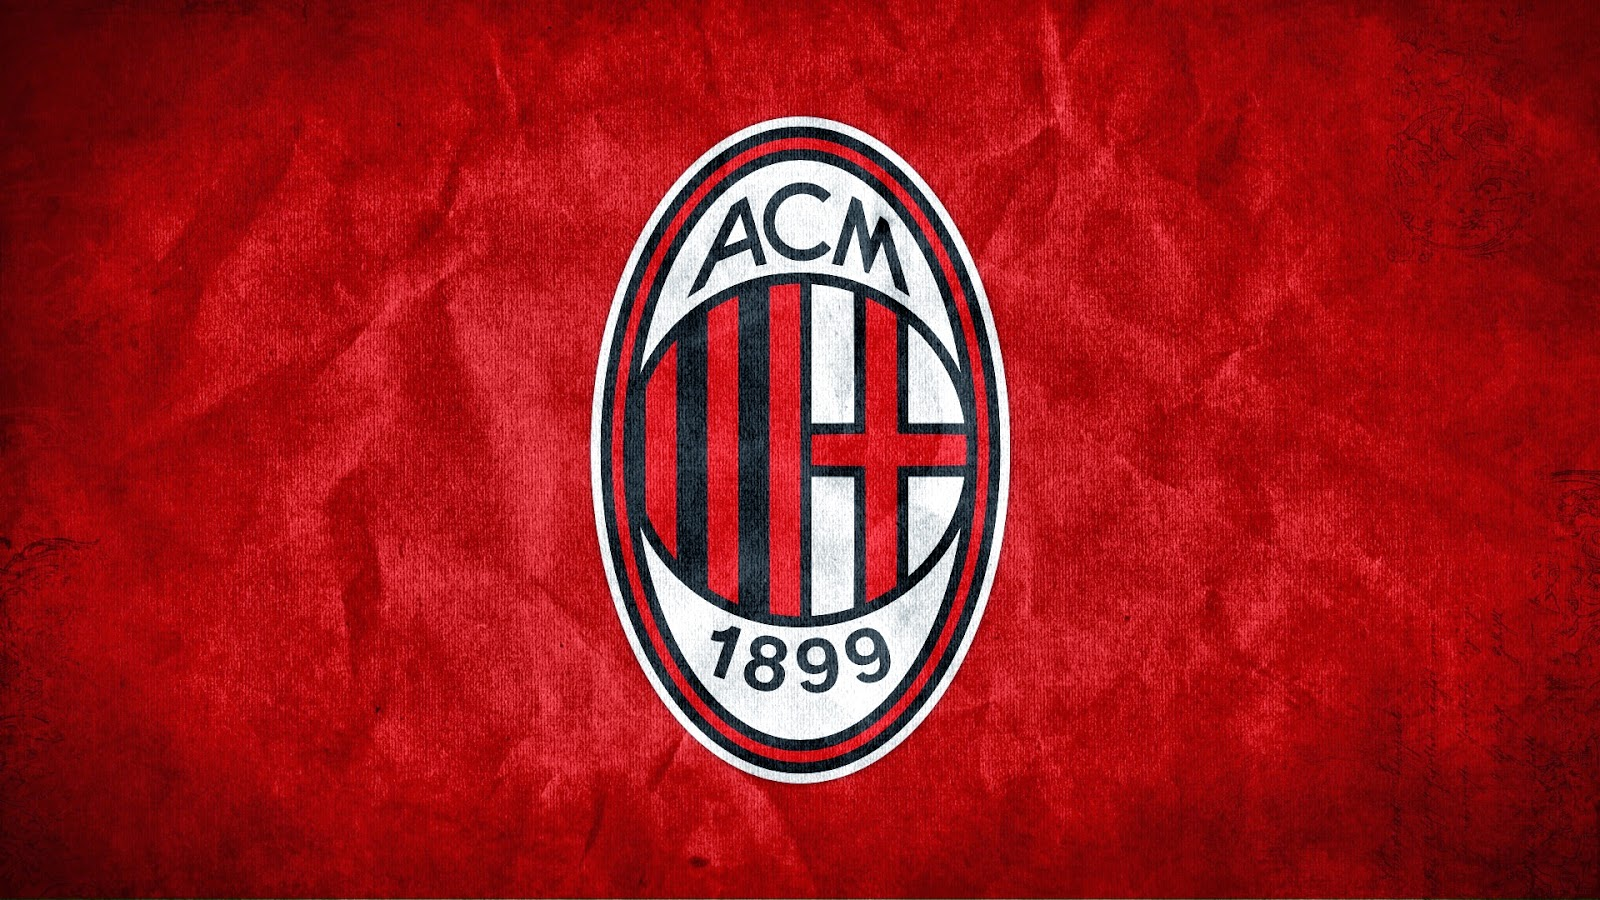 Hd wallpaper ac milan - Ac Milan Club Wallpaper